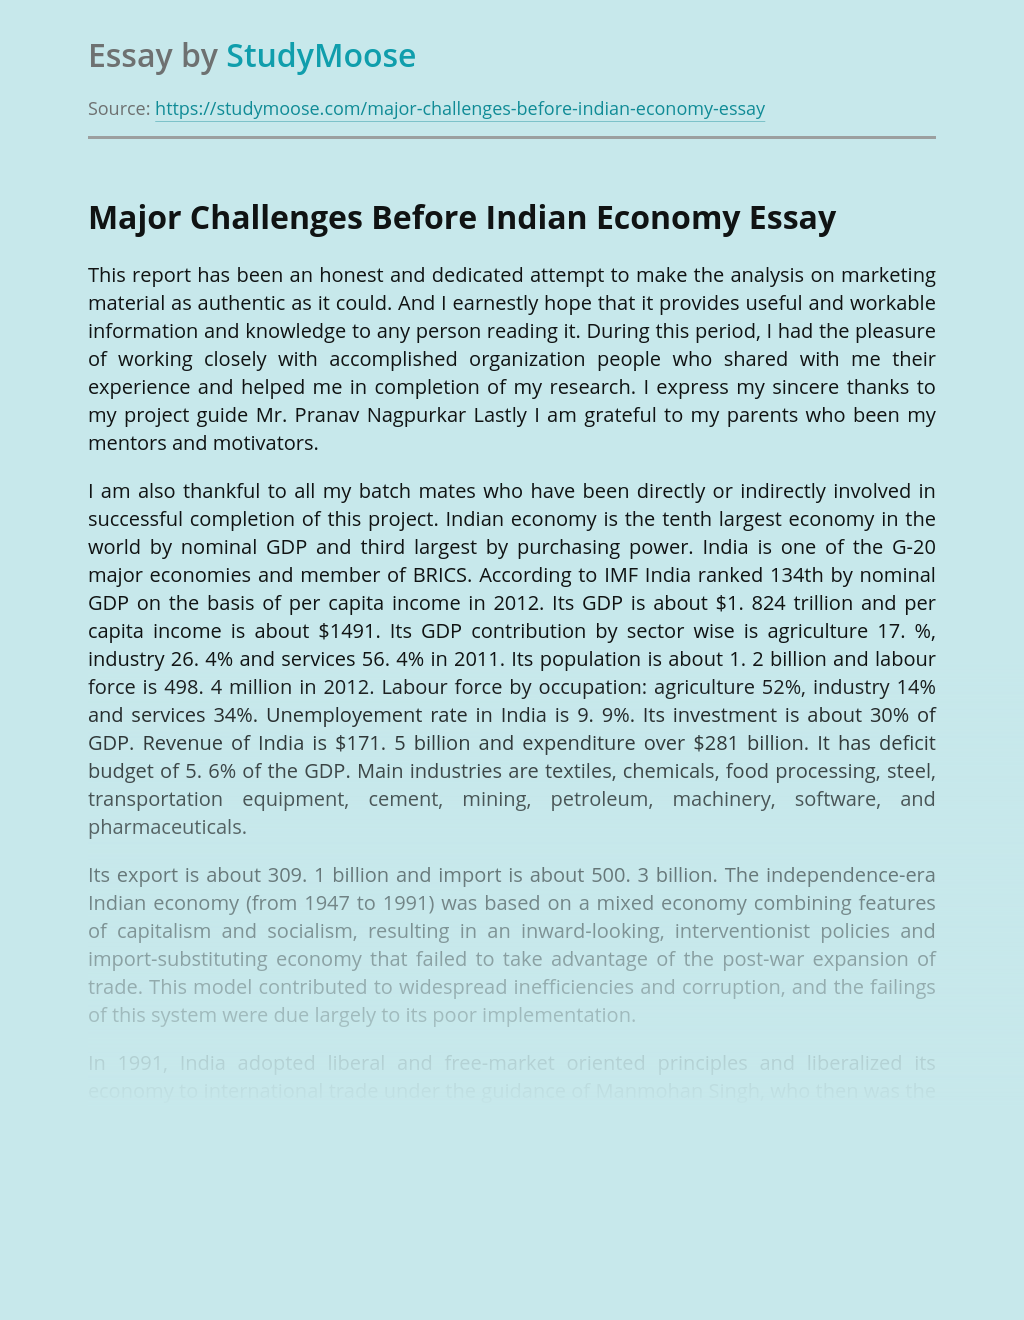 Major Challenges Before Indian Economy